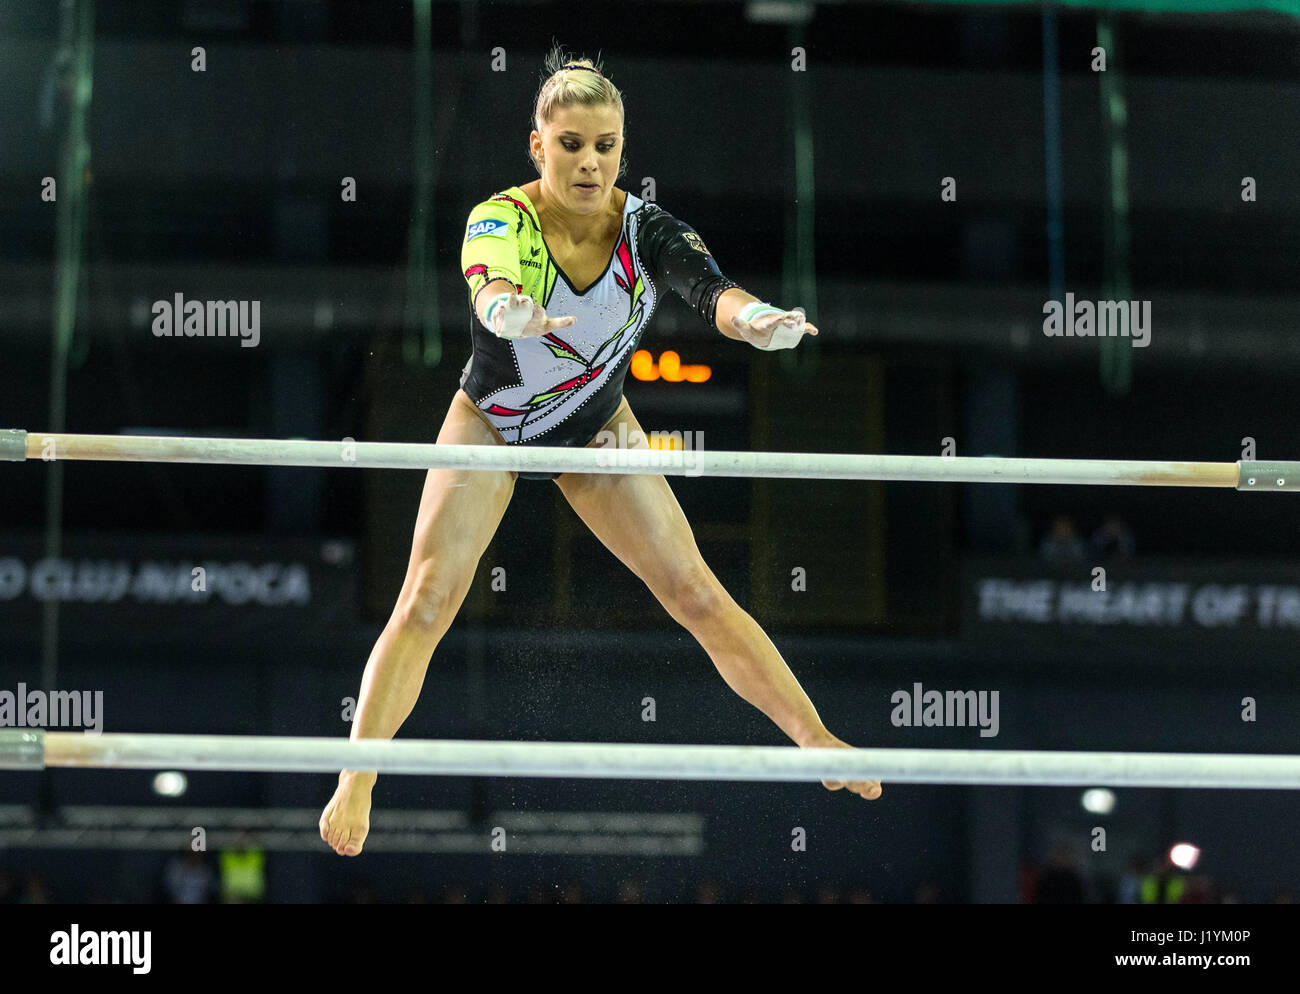 Cluj Napoca, Romania. 22nd Apr, 2017. Elisabeth Seitz from Germany competes at the asymmetrical bars at the UEG Stock Photo